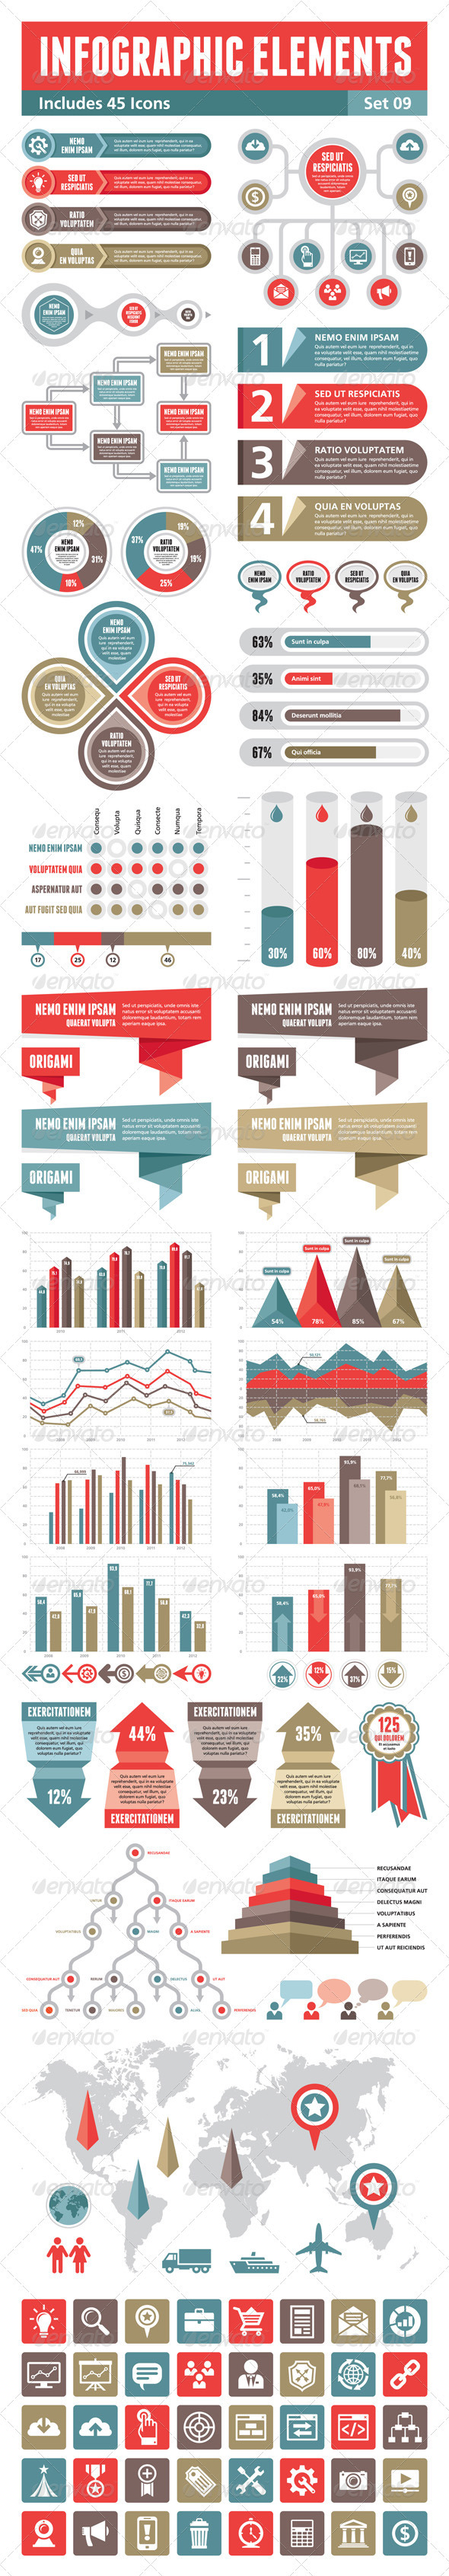 Infographic Elements - Set 09 - Miscellaneous Vectors